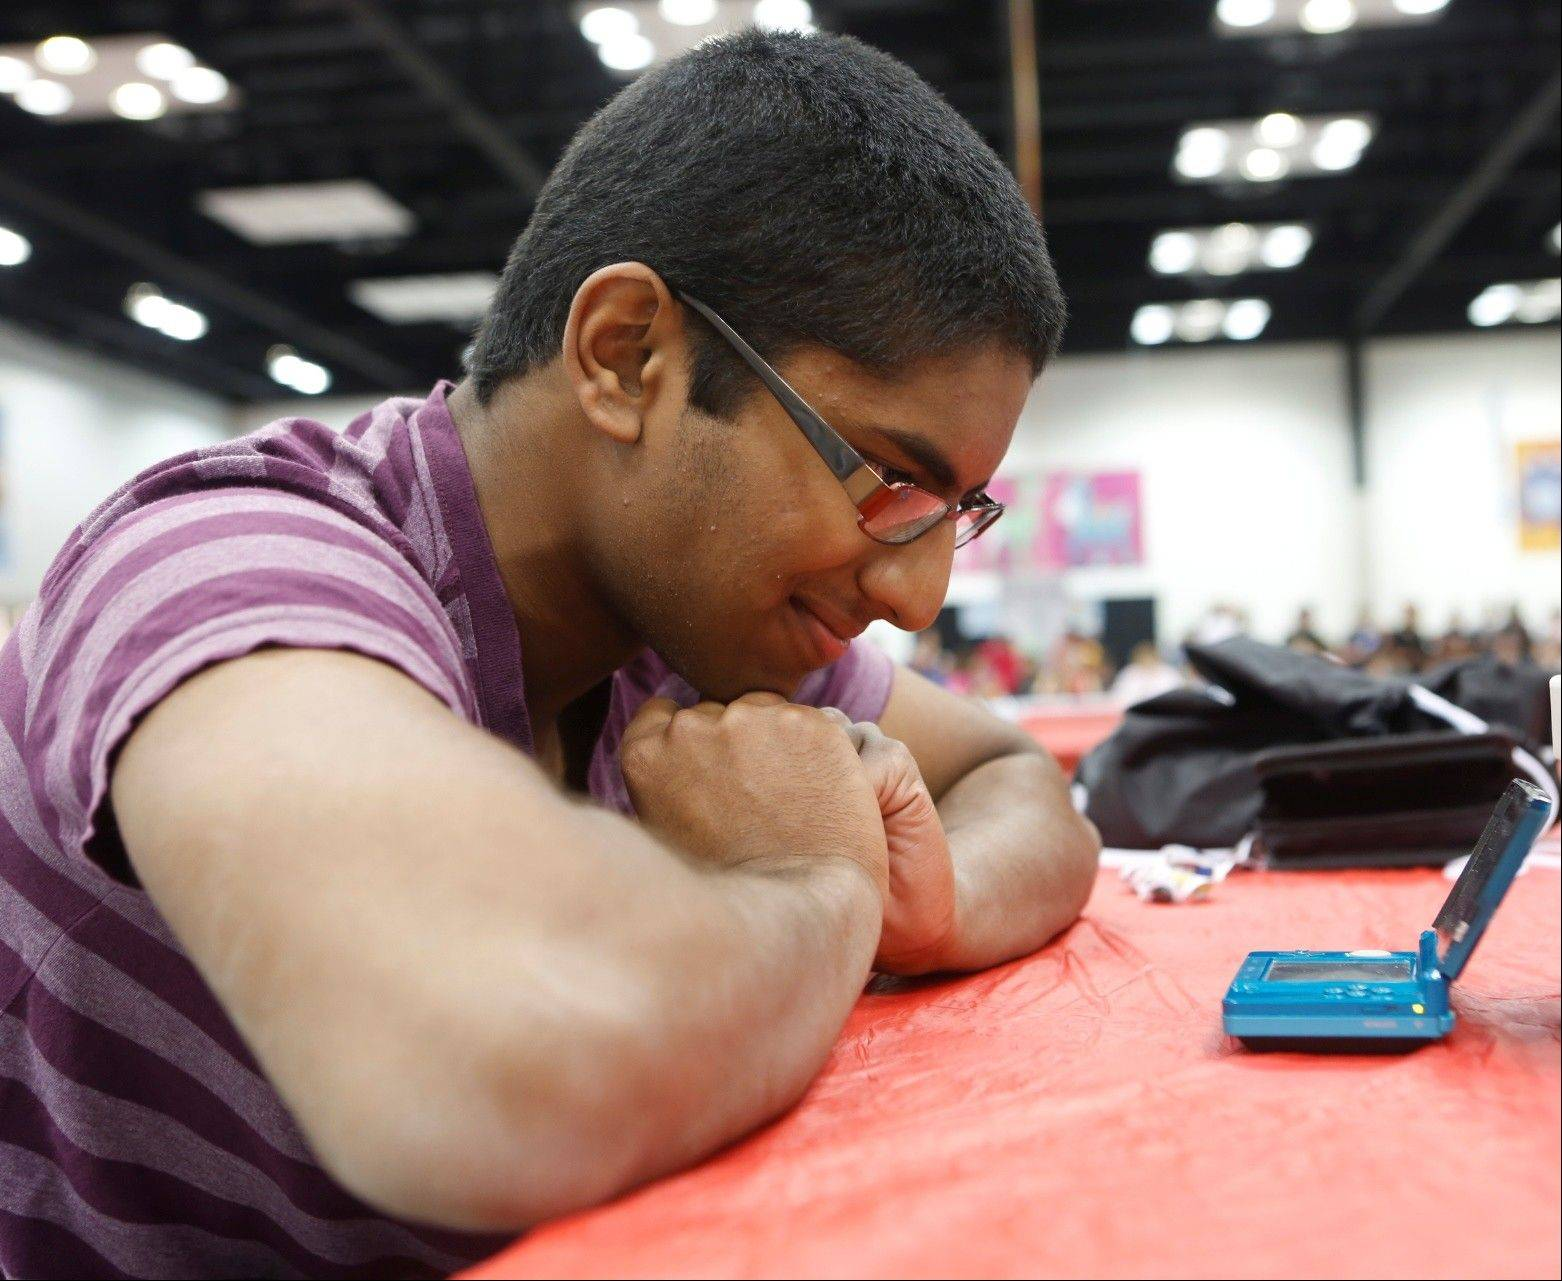 Des Plaines resident Manoj Sunny, 16, gazes at his Nintendo DS during the Pok�mon National Championships in Indianapolis earlier this month. Sunny, who finished in fourth place, will travel to Hawaii for the world championships next month.